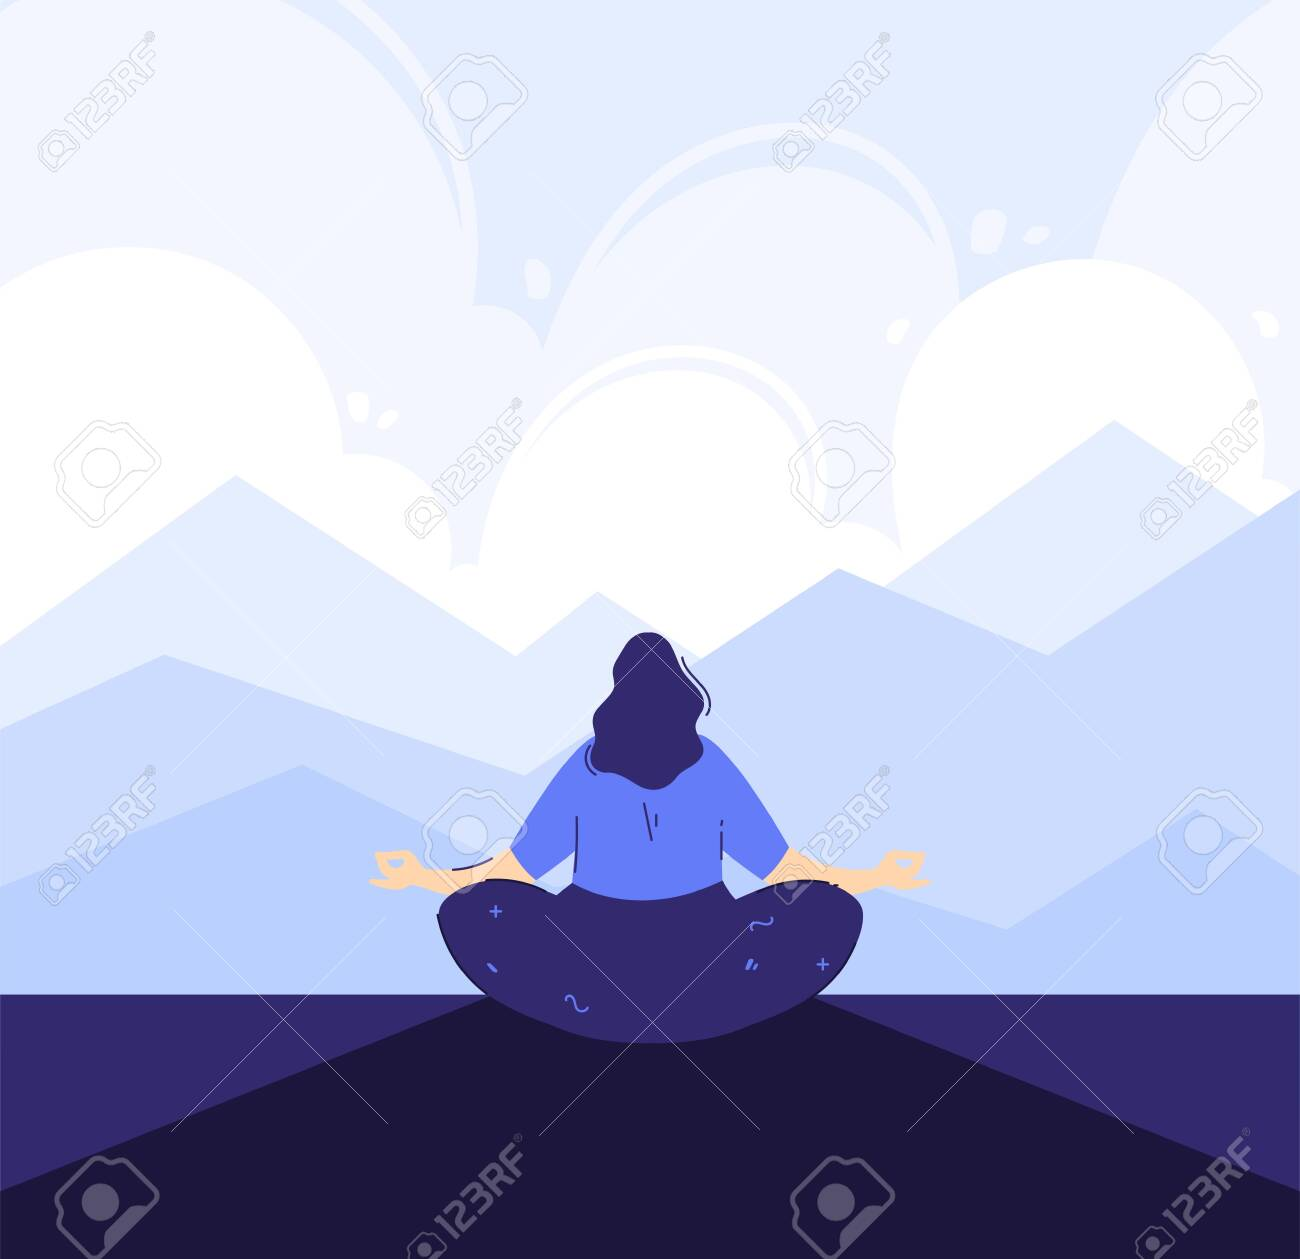 Yoga girl in the front of mountains background. Outdoor meditation concept. Lotus pose - padmasana. Woman relax and chill. - 149455042